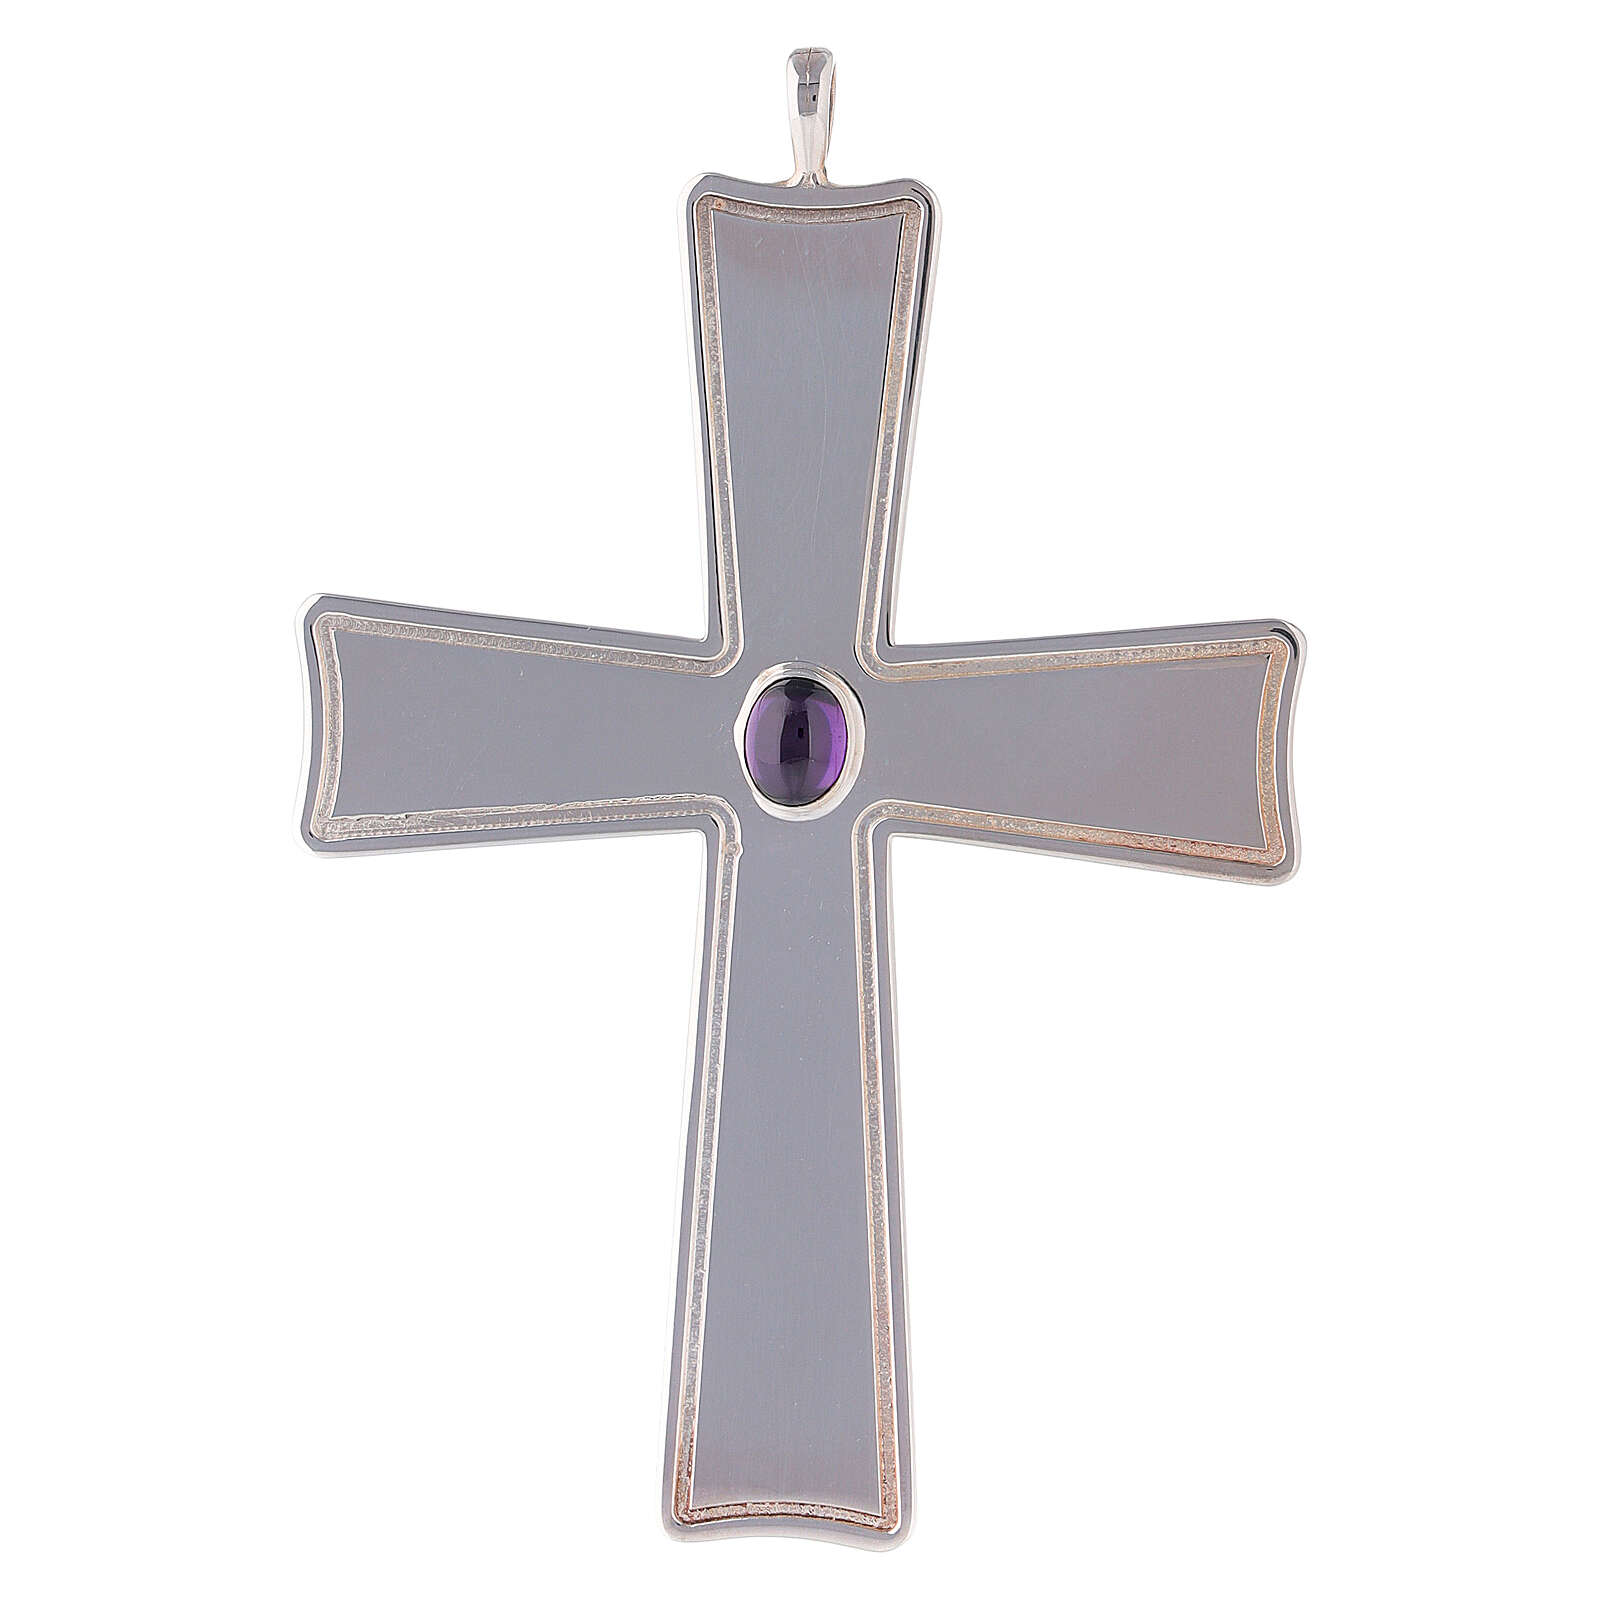 Molina cross for bishops in sterling silver 3